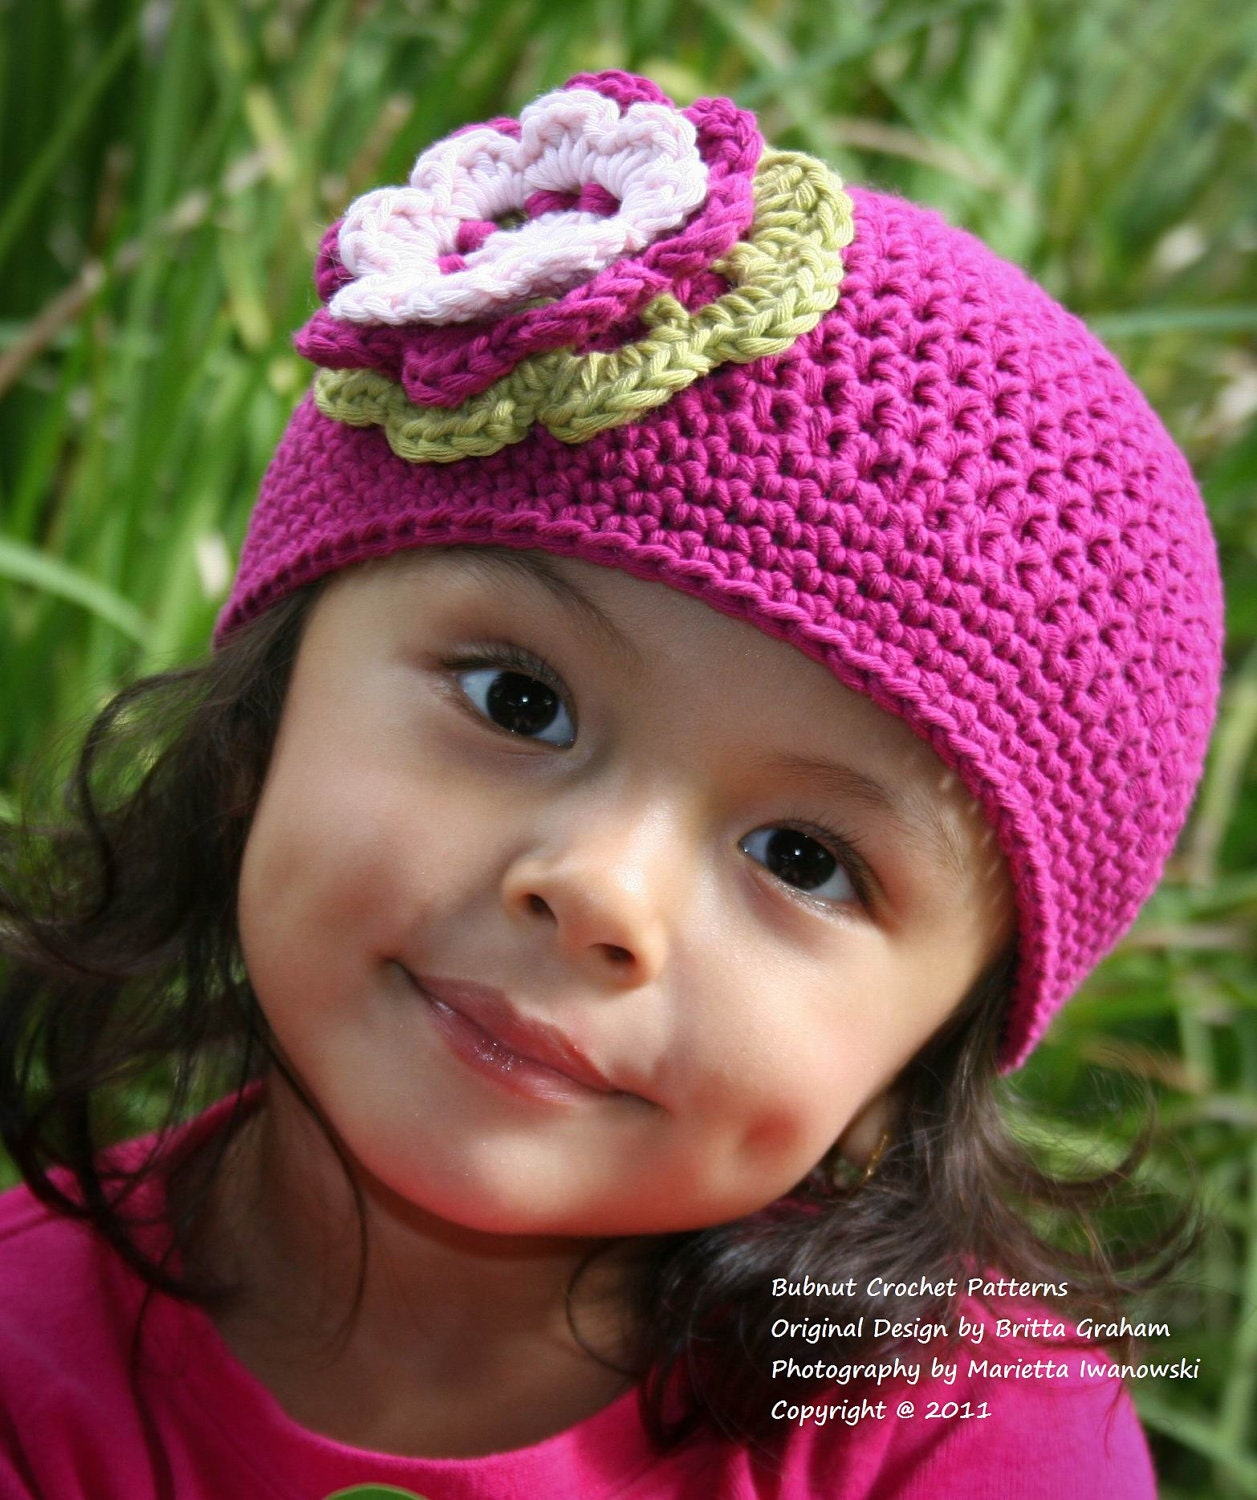 Crochet Patterns For Baby Girl : Crochet Hat Pattern Girls Easy Peasy Beanie Crochet Pattern